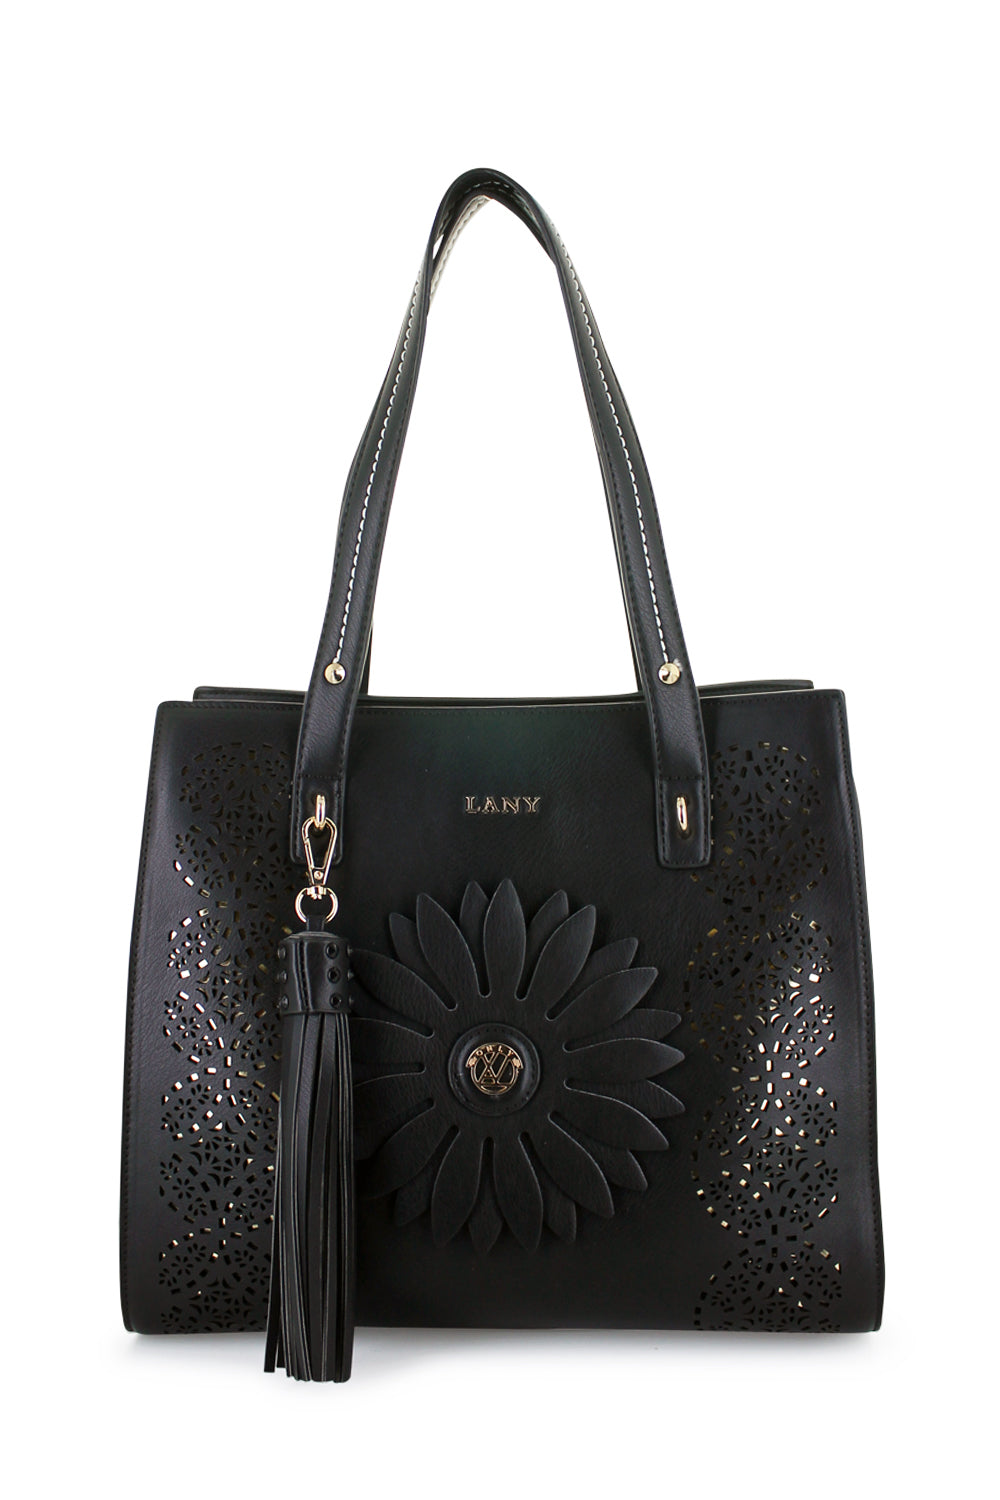 Sheri Flower Tote - LANY